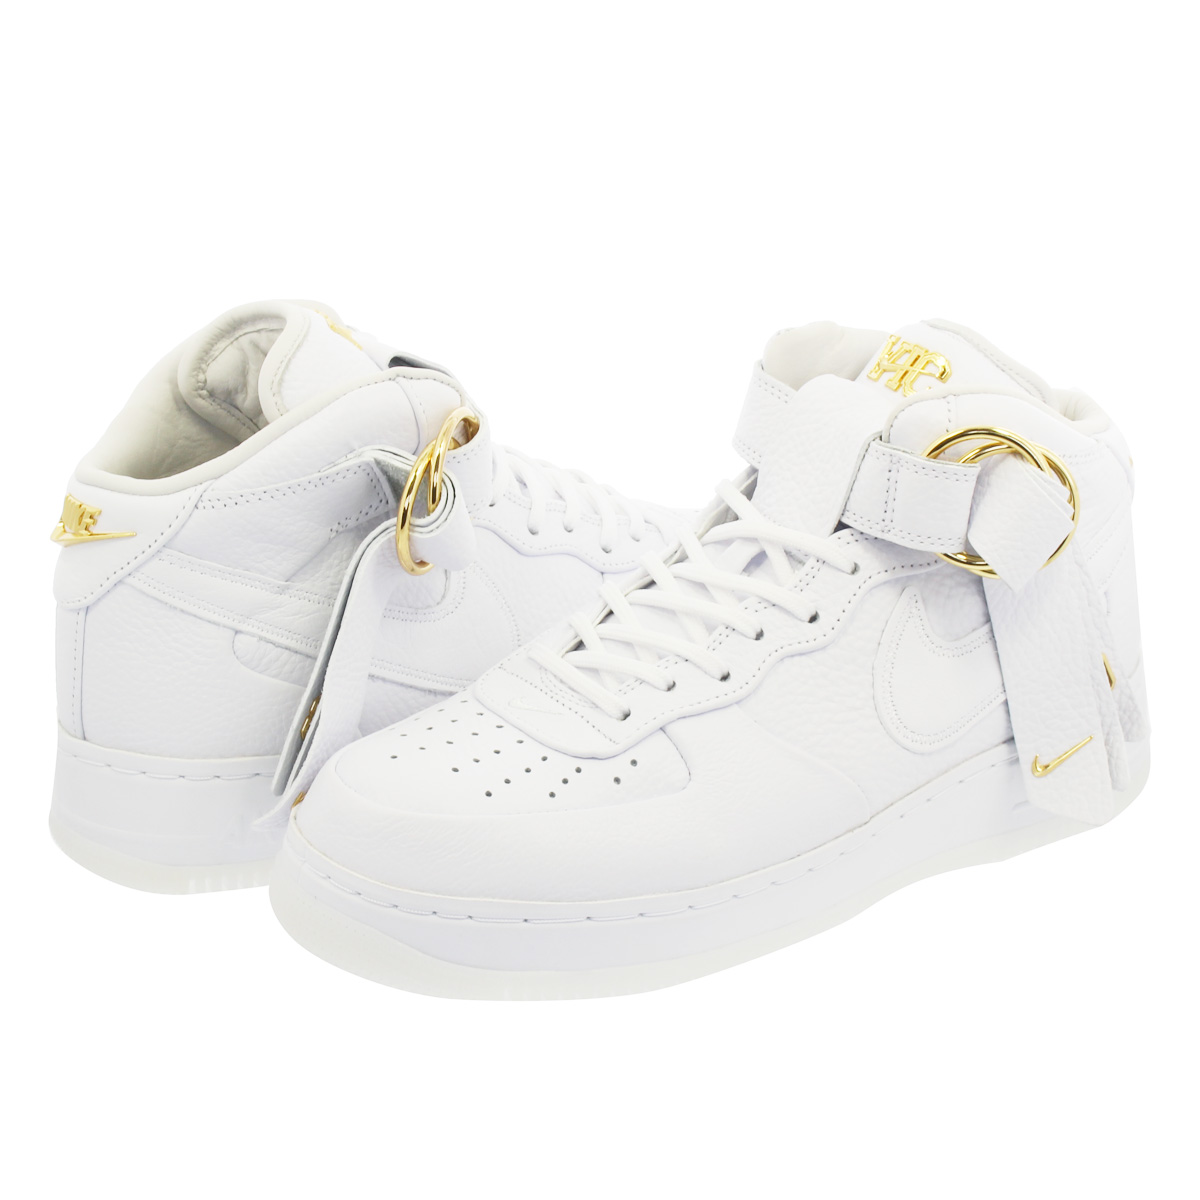 huge discount 49615 b3b55 NIKE AIR FORCE 1 MID CMFT X VICTOR CRUZ Nike X Victor Cruise air force 1 ...